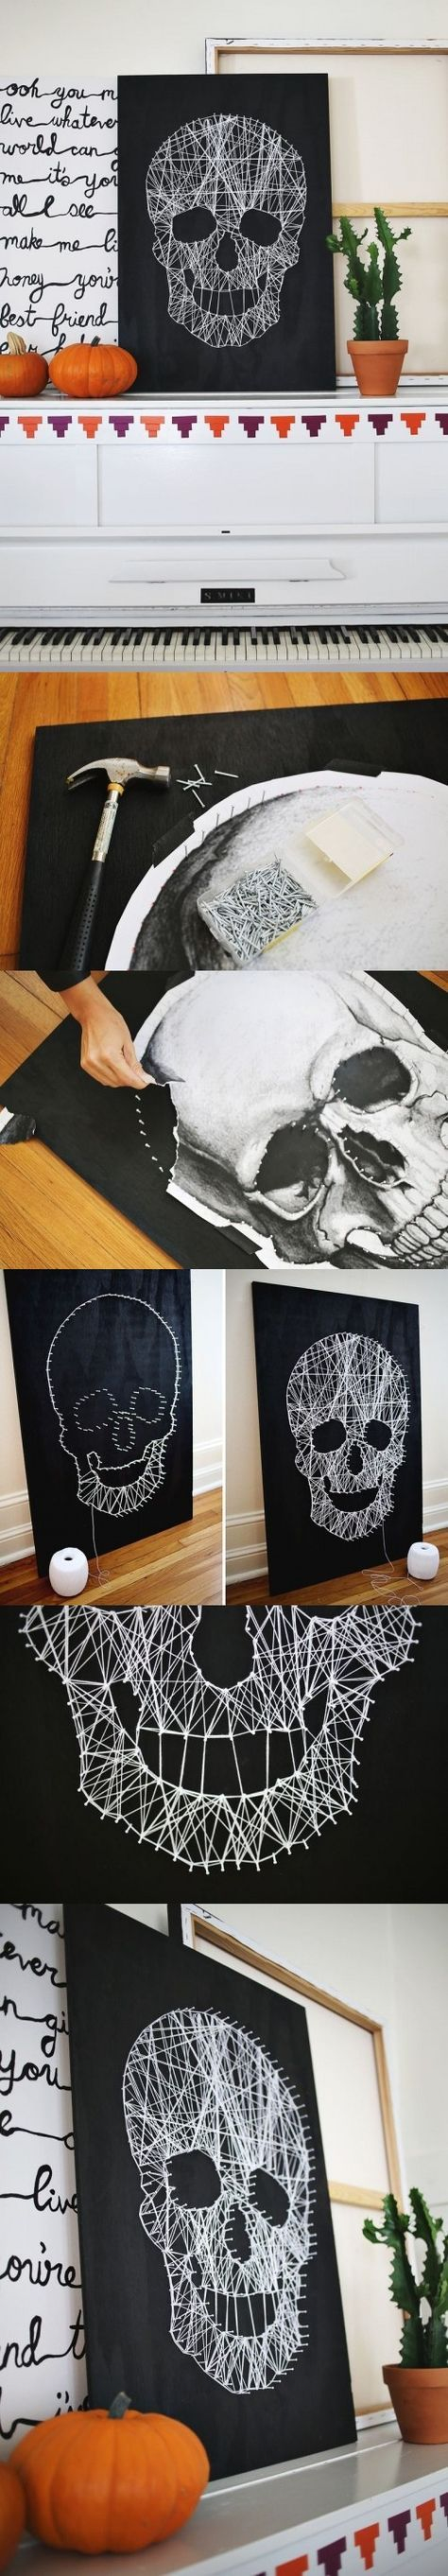 3 Black And White DIY Skull String Art